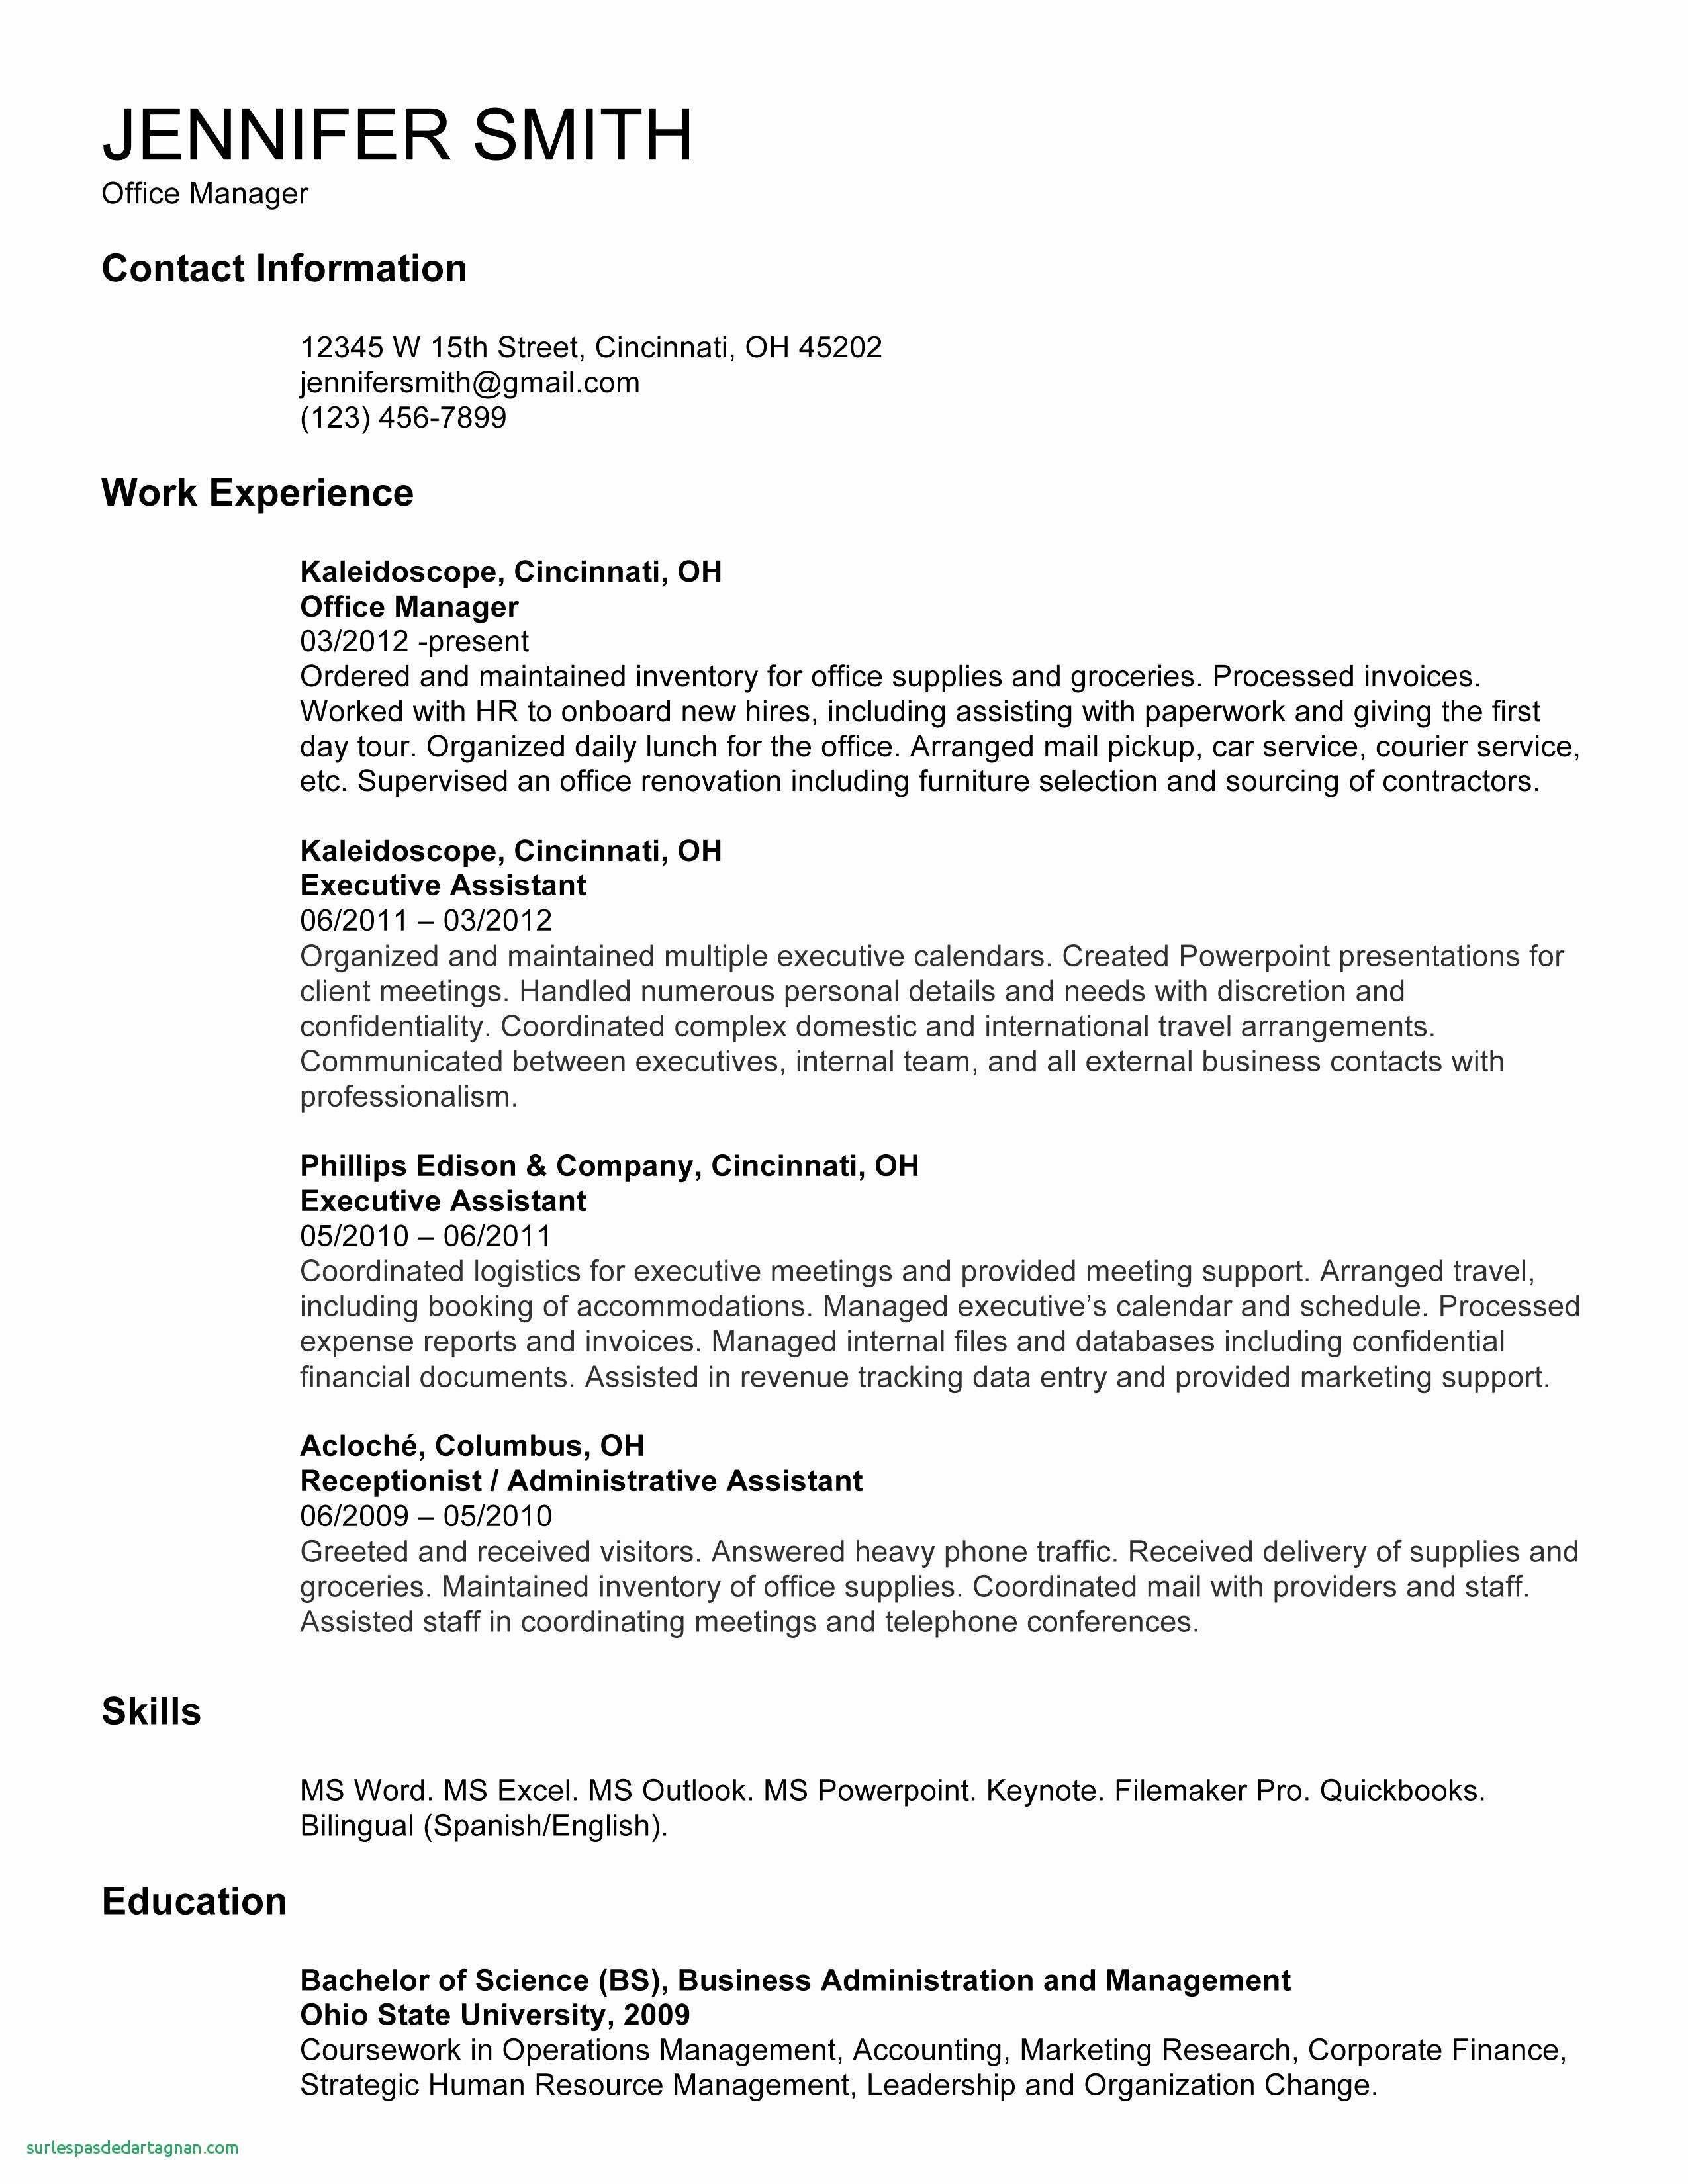 Fire Department Promotional Resume Template - Resume Template Download Free Unique ¢Ë†Å¡ Resume Template Download